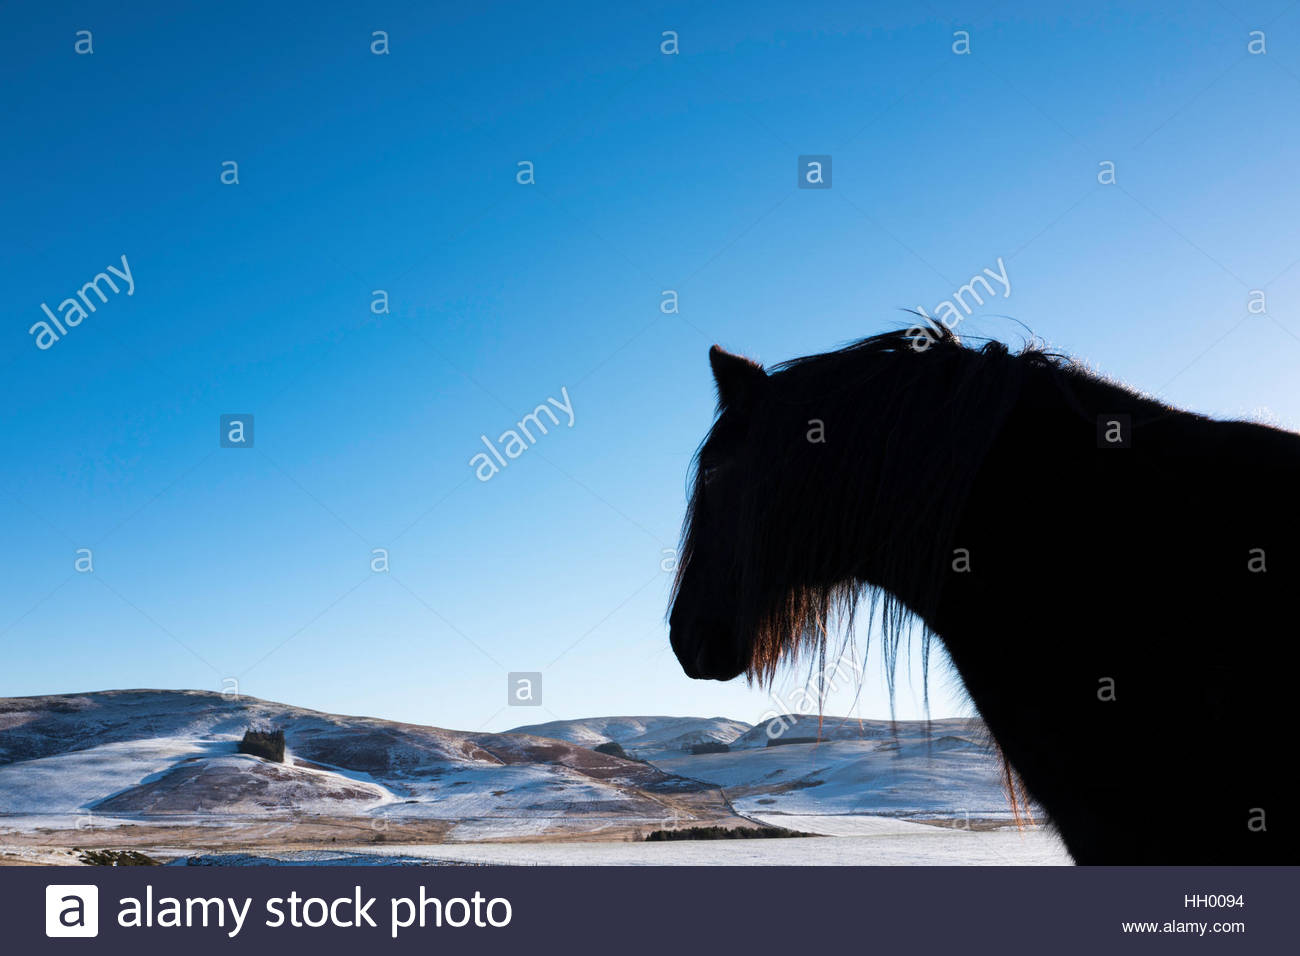 Towford, Hownam, Jedburgh, Scottish Borders, UK. 14th January 2017.  A fell pony looks out onto a wintry landscape - Stock Image